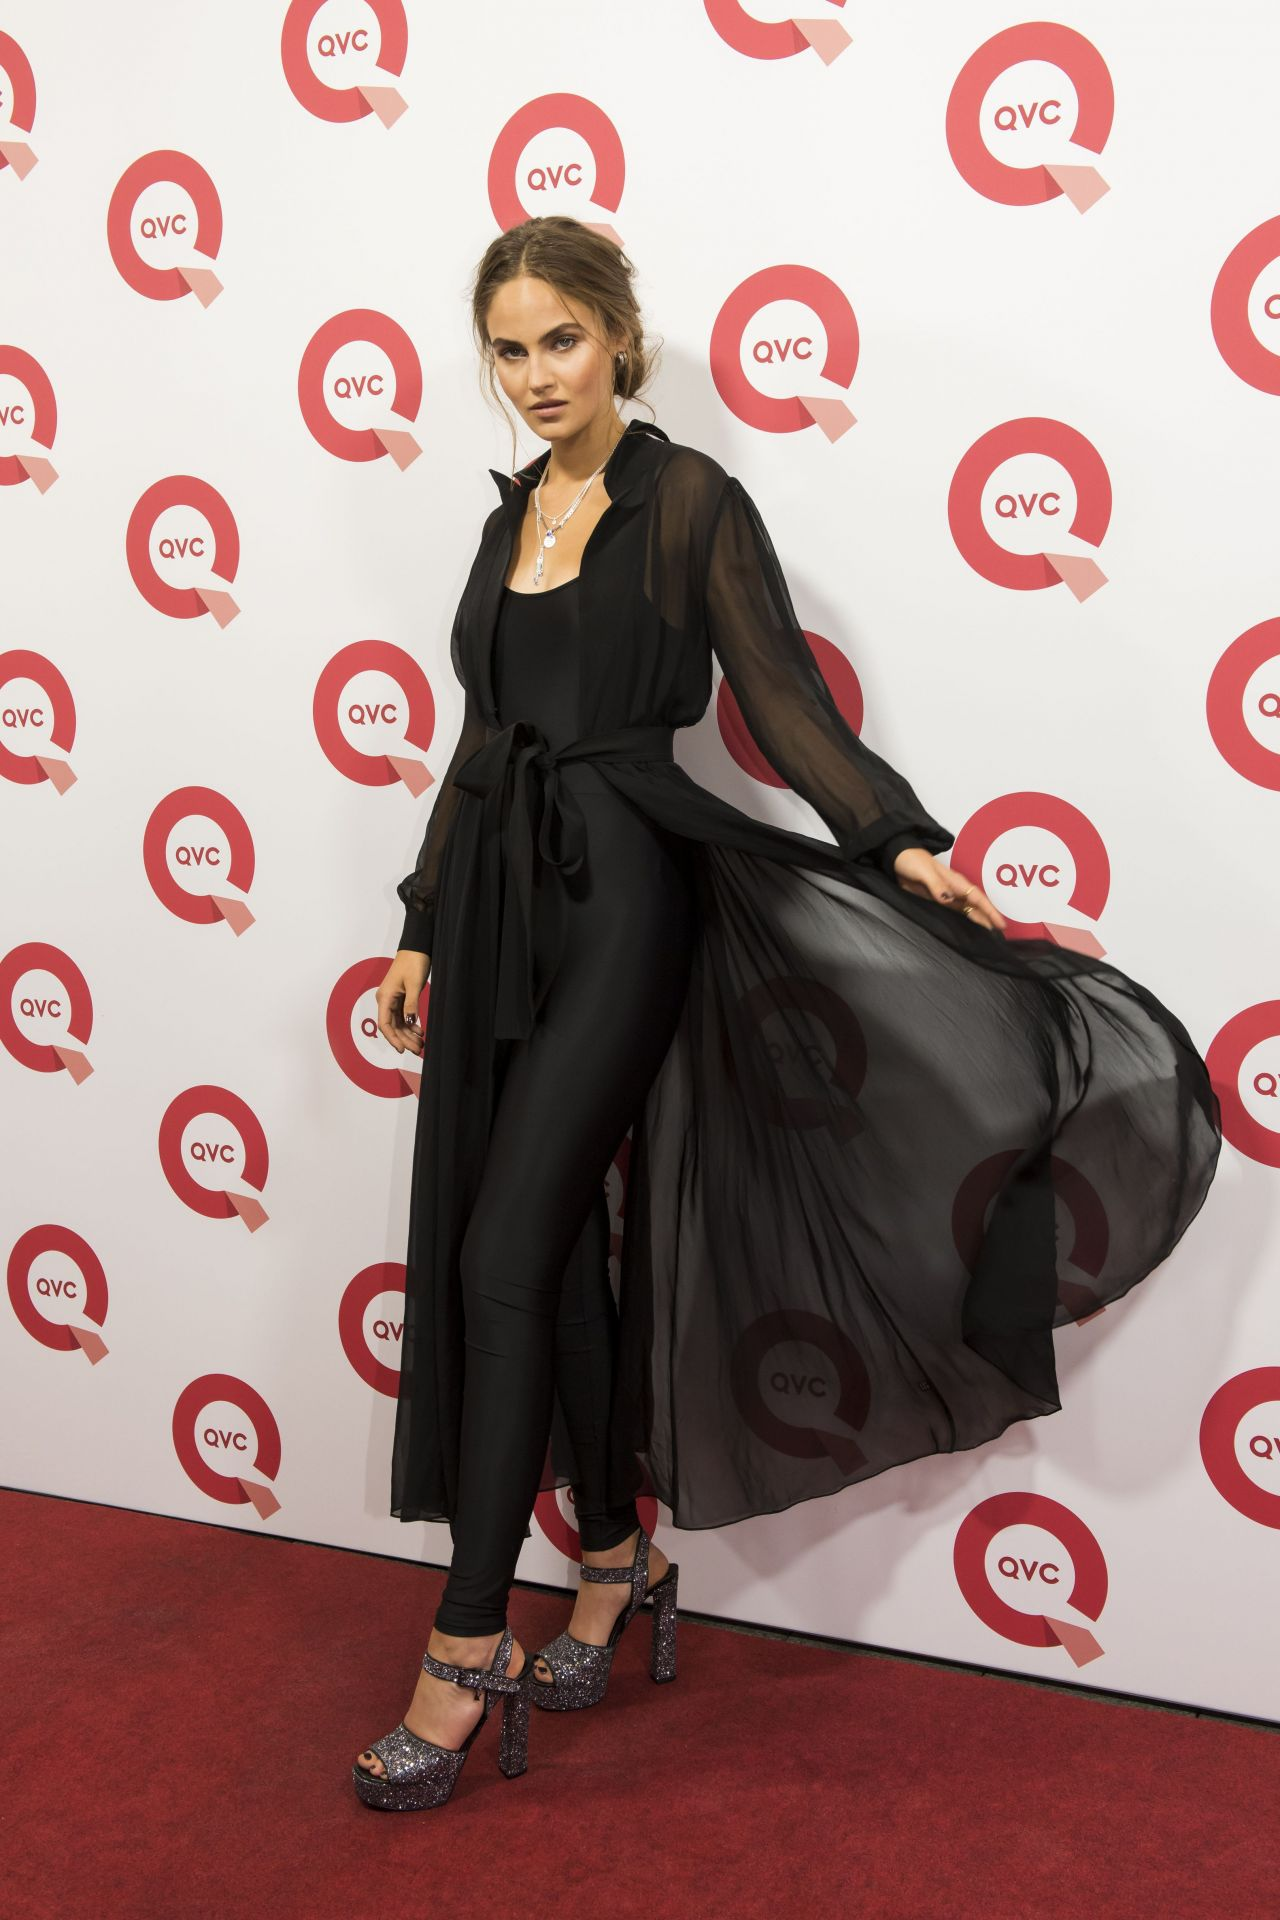 elena carri re qvc vogue fashion night in d sseldorf 09 08 2017. Black Bedroom Furniture Sets. Home Design Ideas